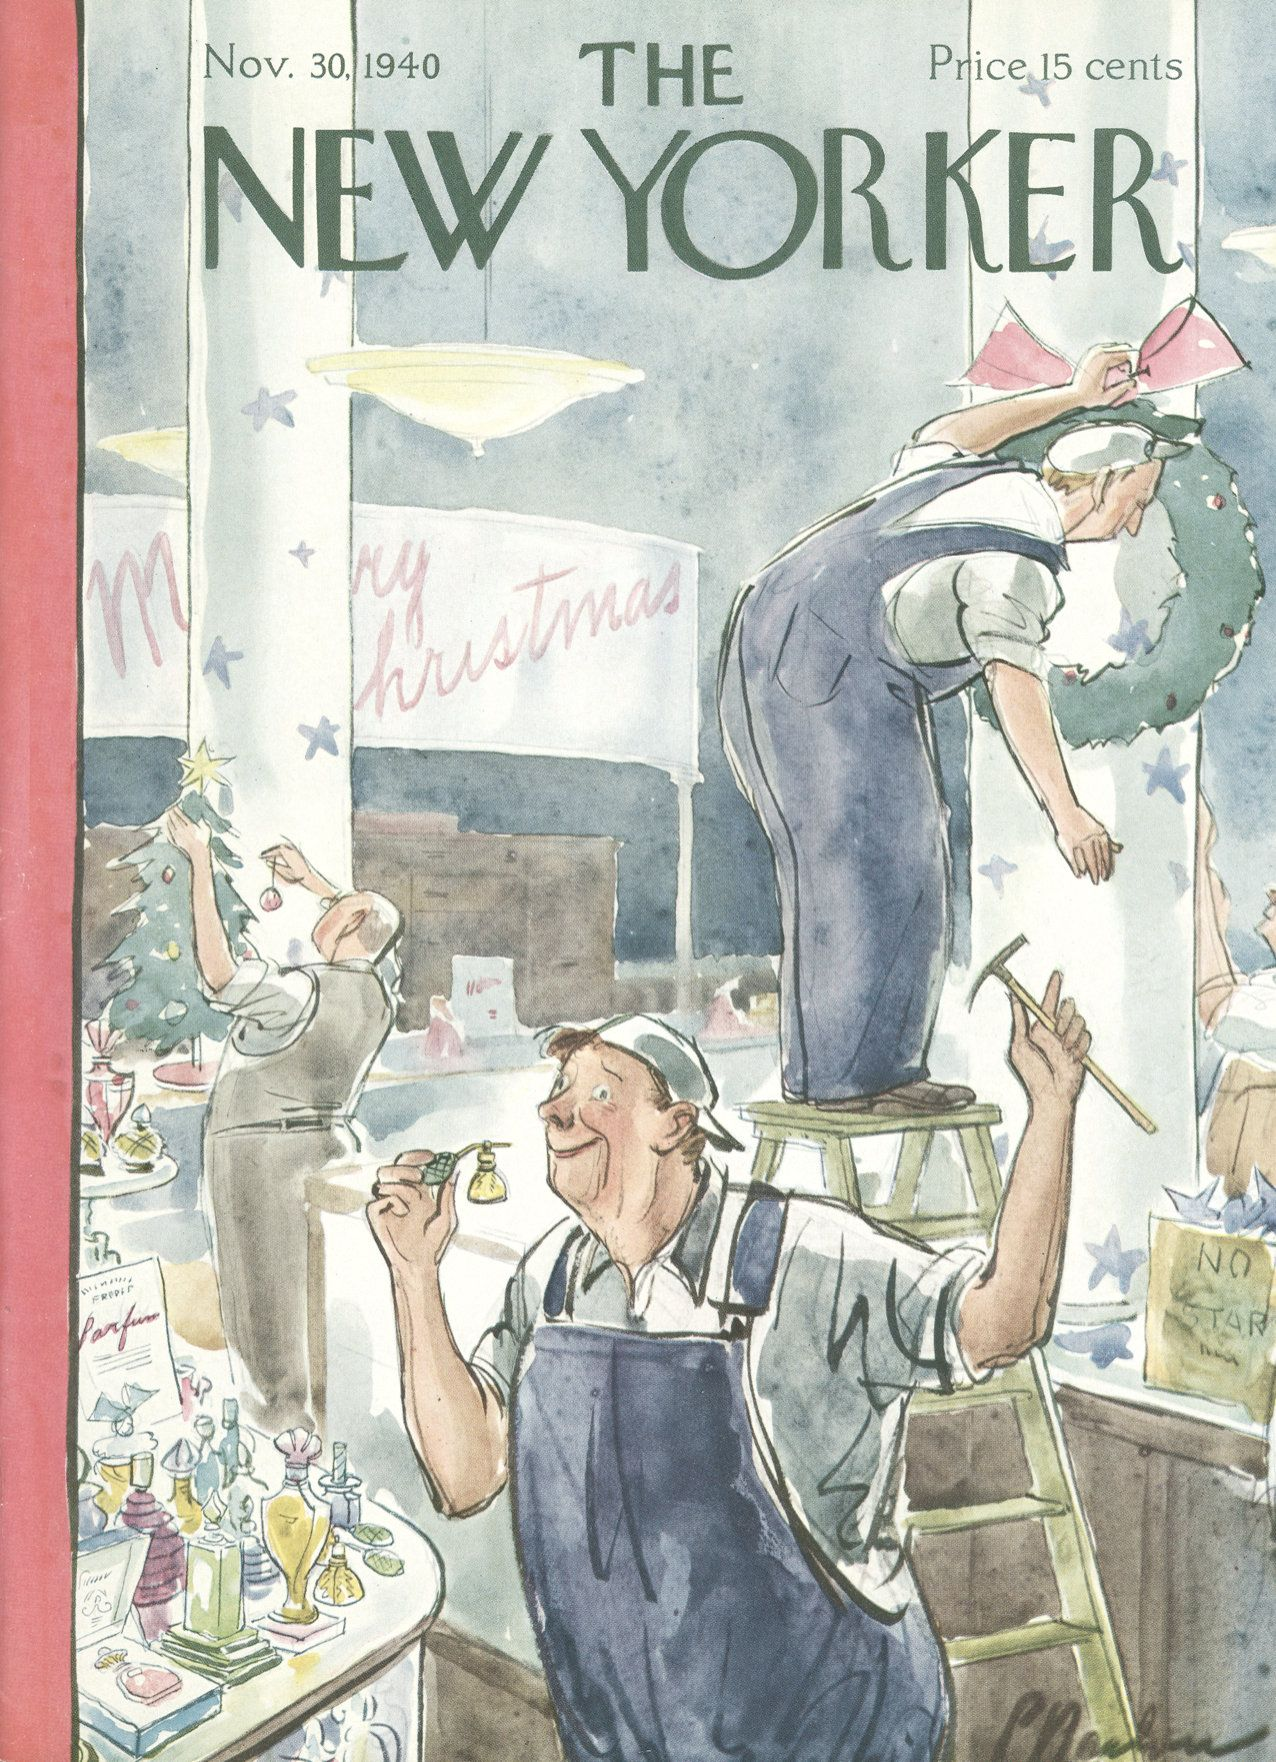 The New Yorker - Saturday, November 30, 1940 - Issue # 824 - Vol. 16 - N° 42 - Cover by : Perry Barlow